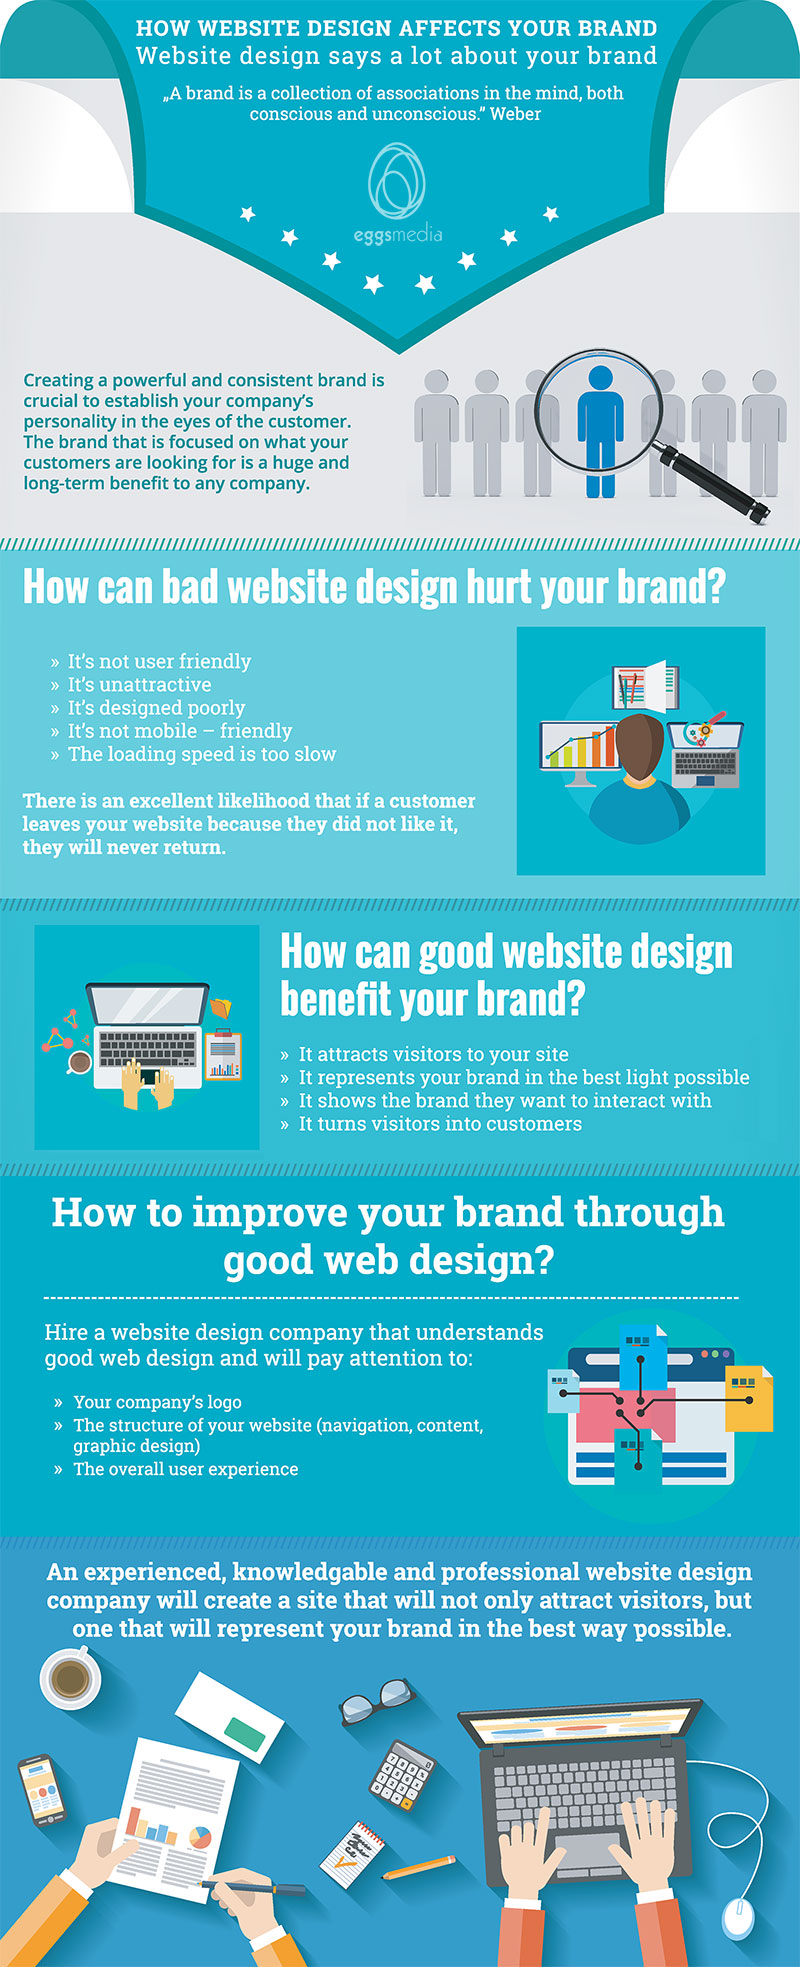 How Website Design Affects Your Brand eggsmedia infographic